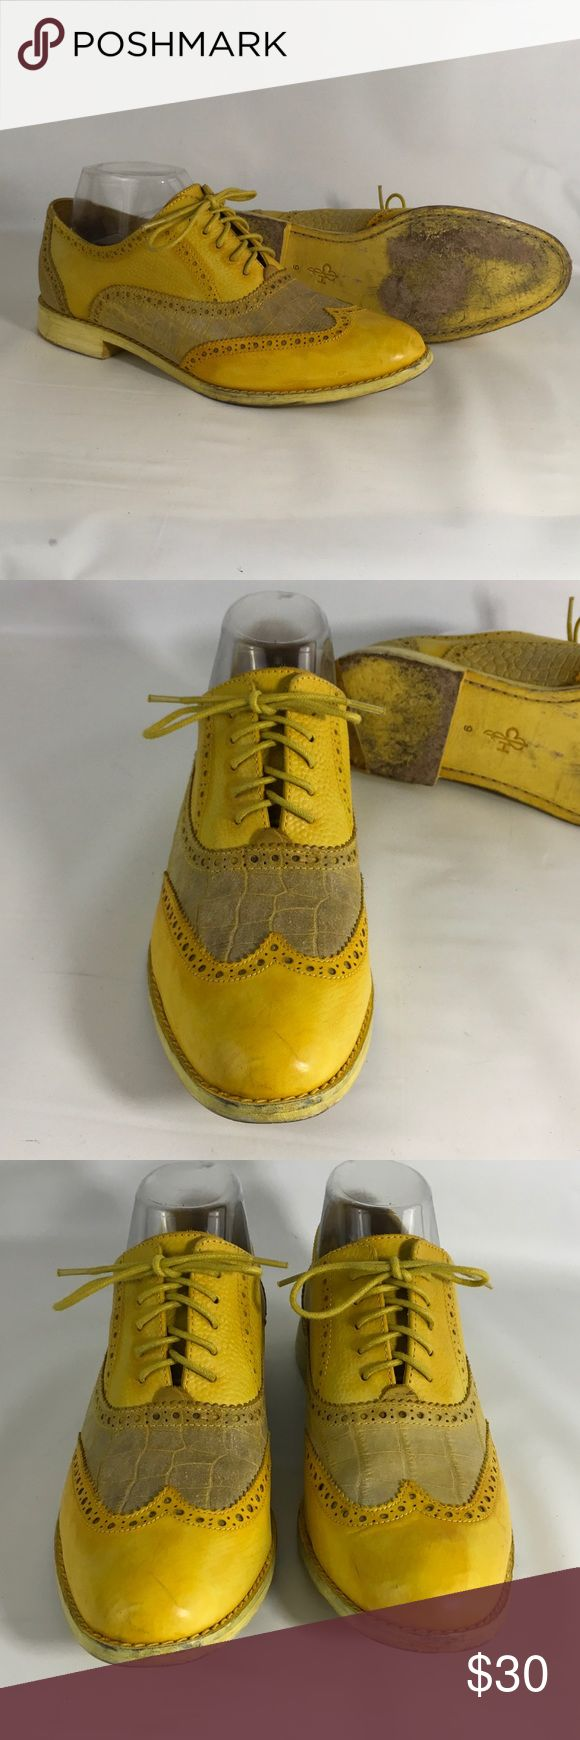 Cole Haan Yellow Women's Oxfords Shoes In good pre-owned condition.  There are scuff marks on the leather.  Scuffing of the heels. Cole Haan Shoes Flats & Loafers